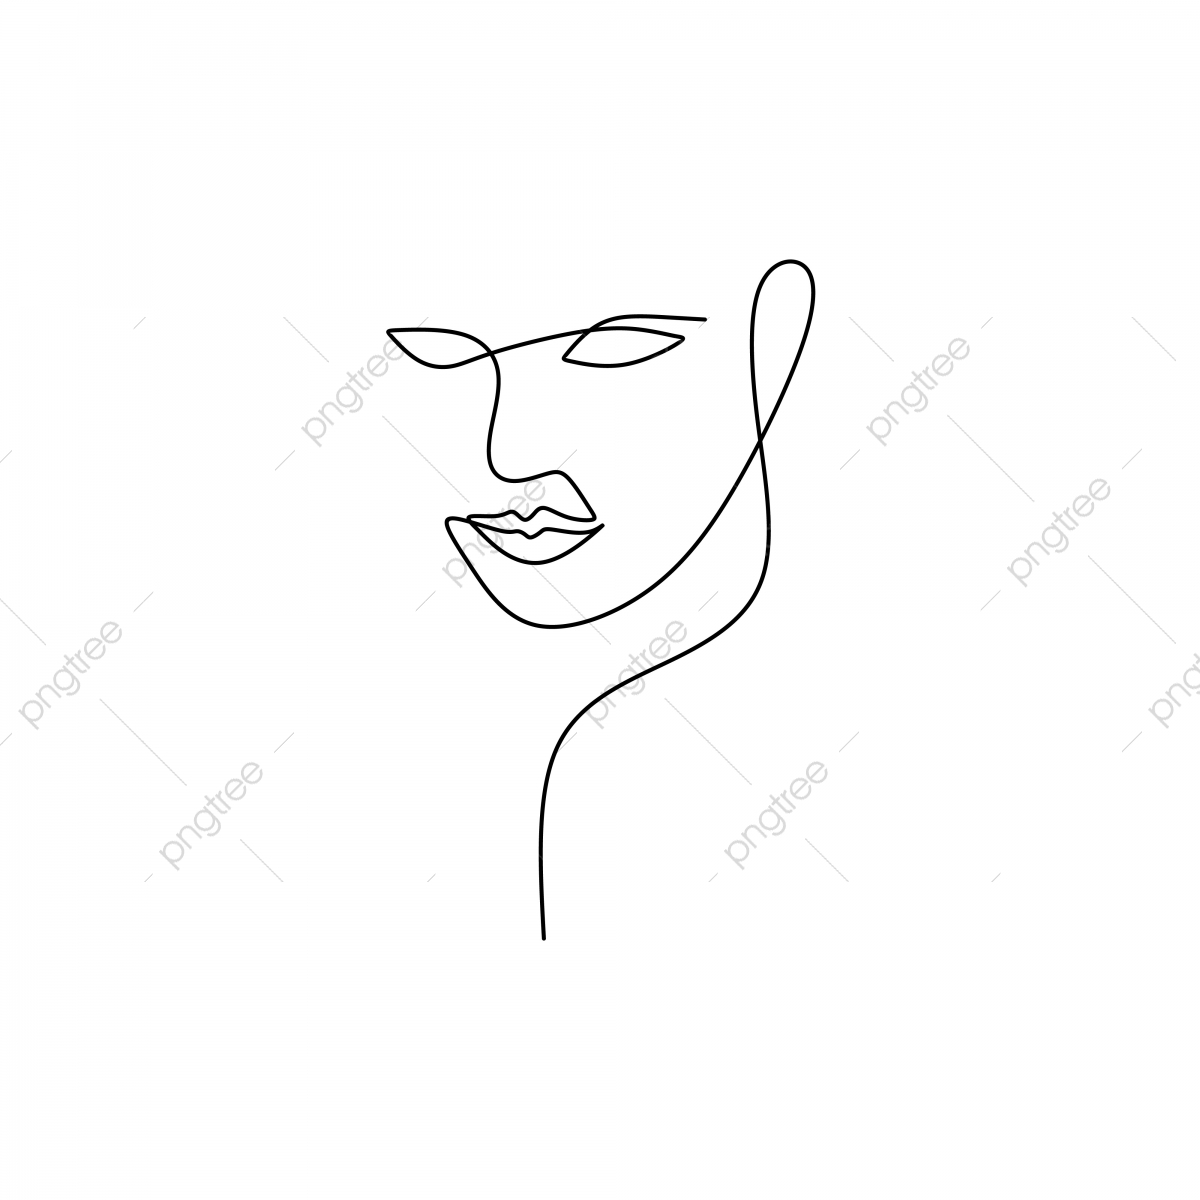 pngtree abstract face continuous one line drawing vector illustration minimalism style on png image